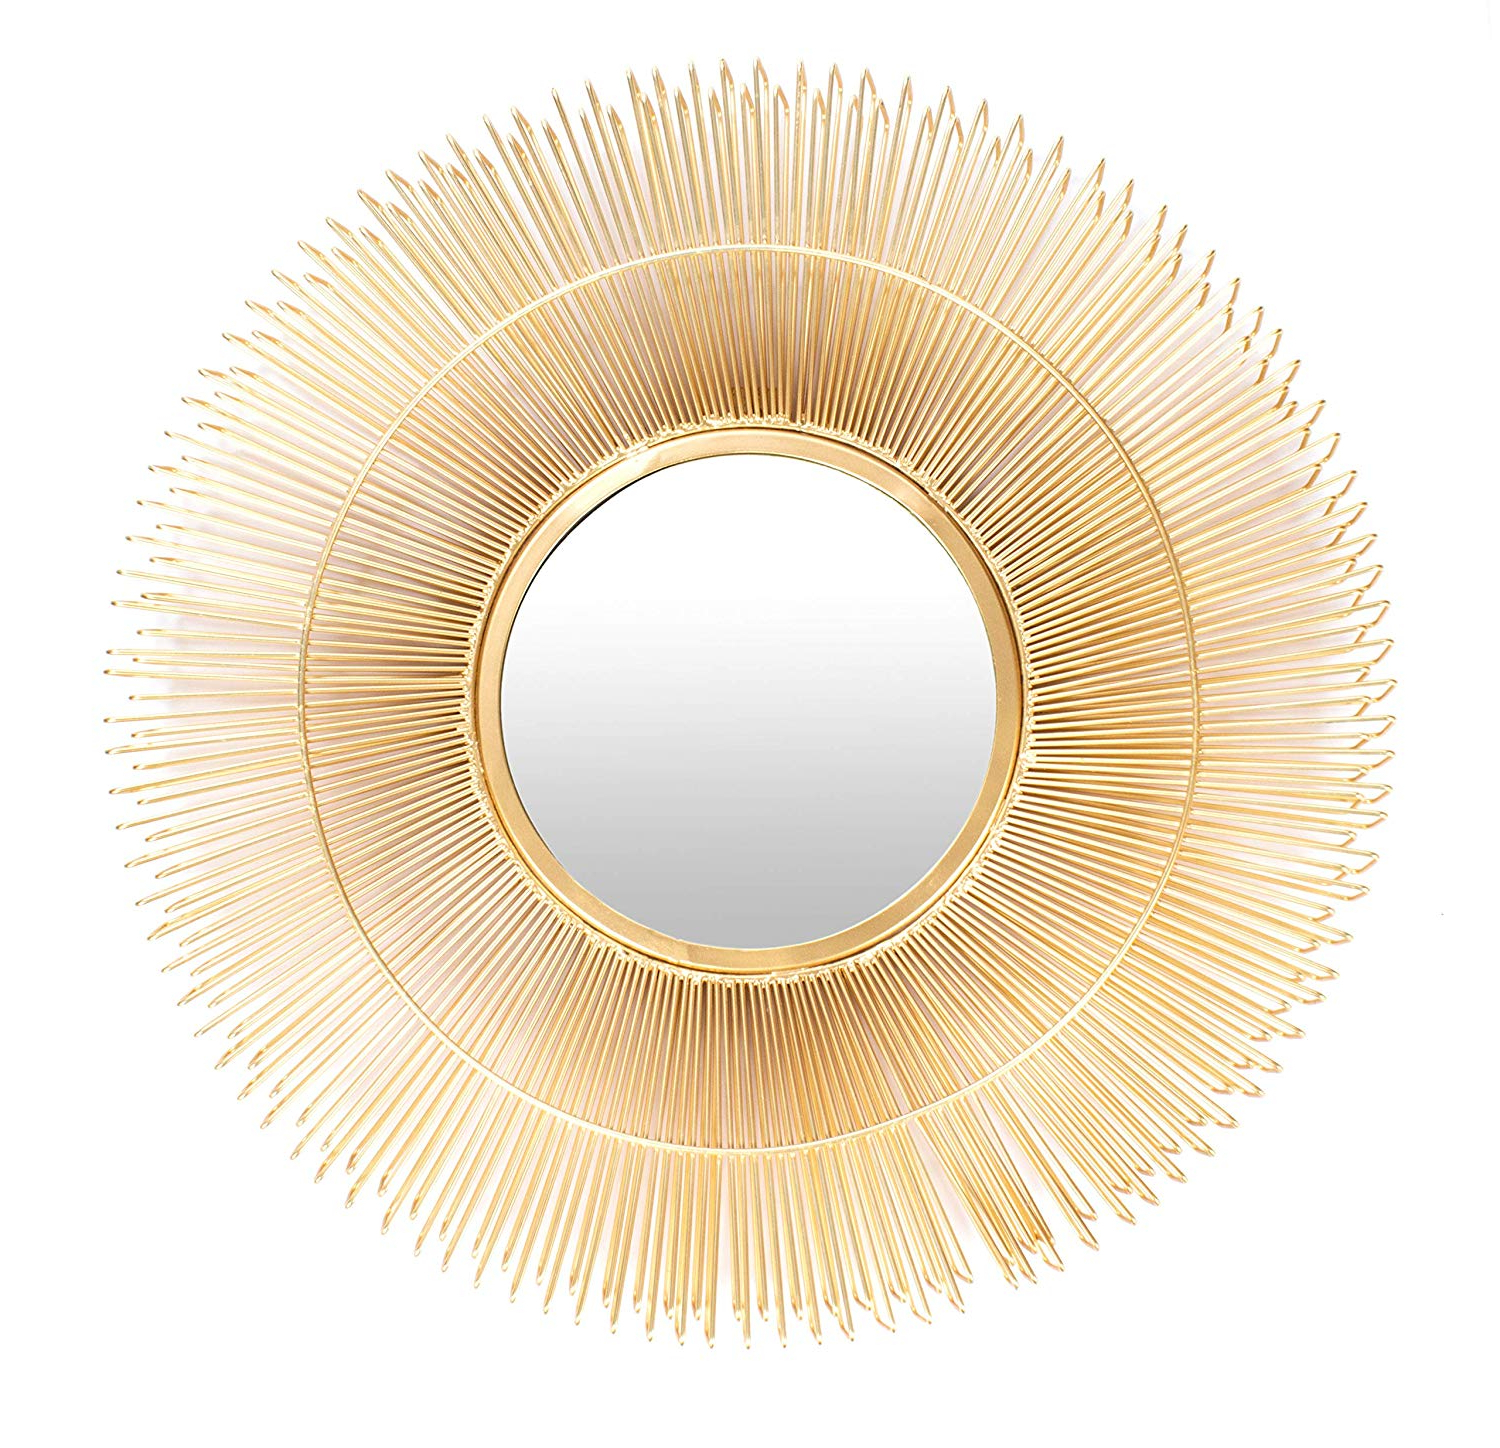 Most Recent Amazon: Red Fig Home Wall Mirror Decor Decorative Gold Finished For Large Red Wall Mirrors (View 19 of 20)